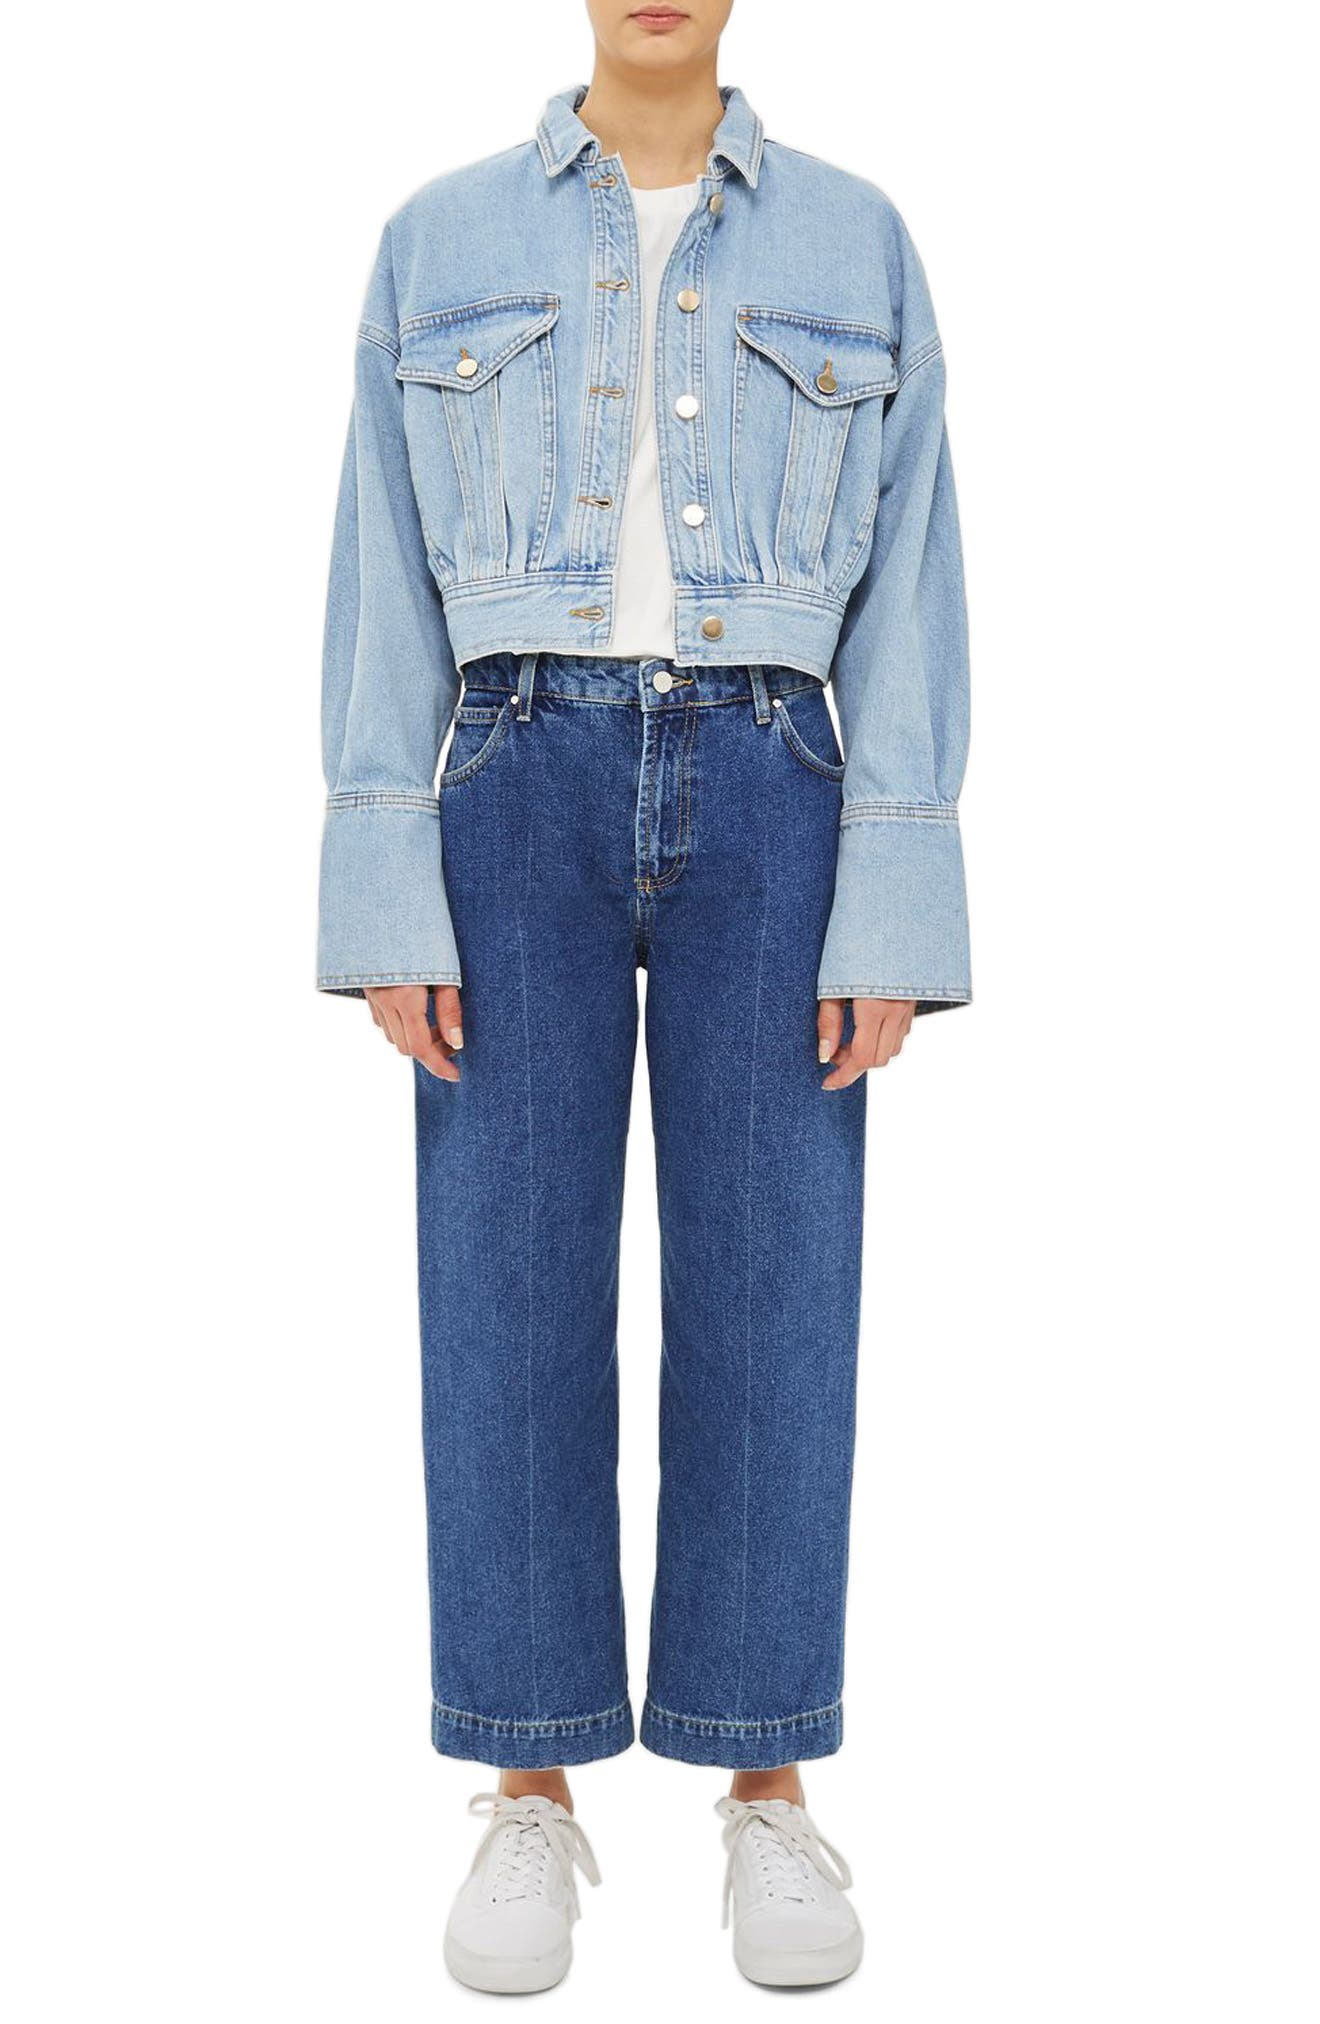 Alternate Image 1 Selected - Topshop Boutique Crop Denim Jacket